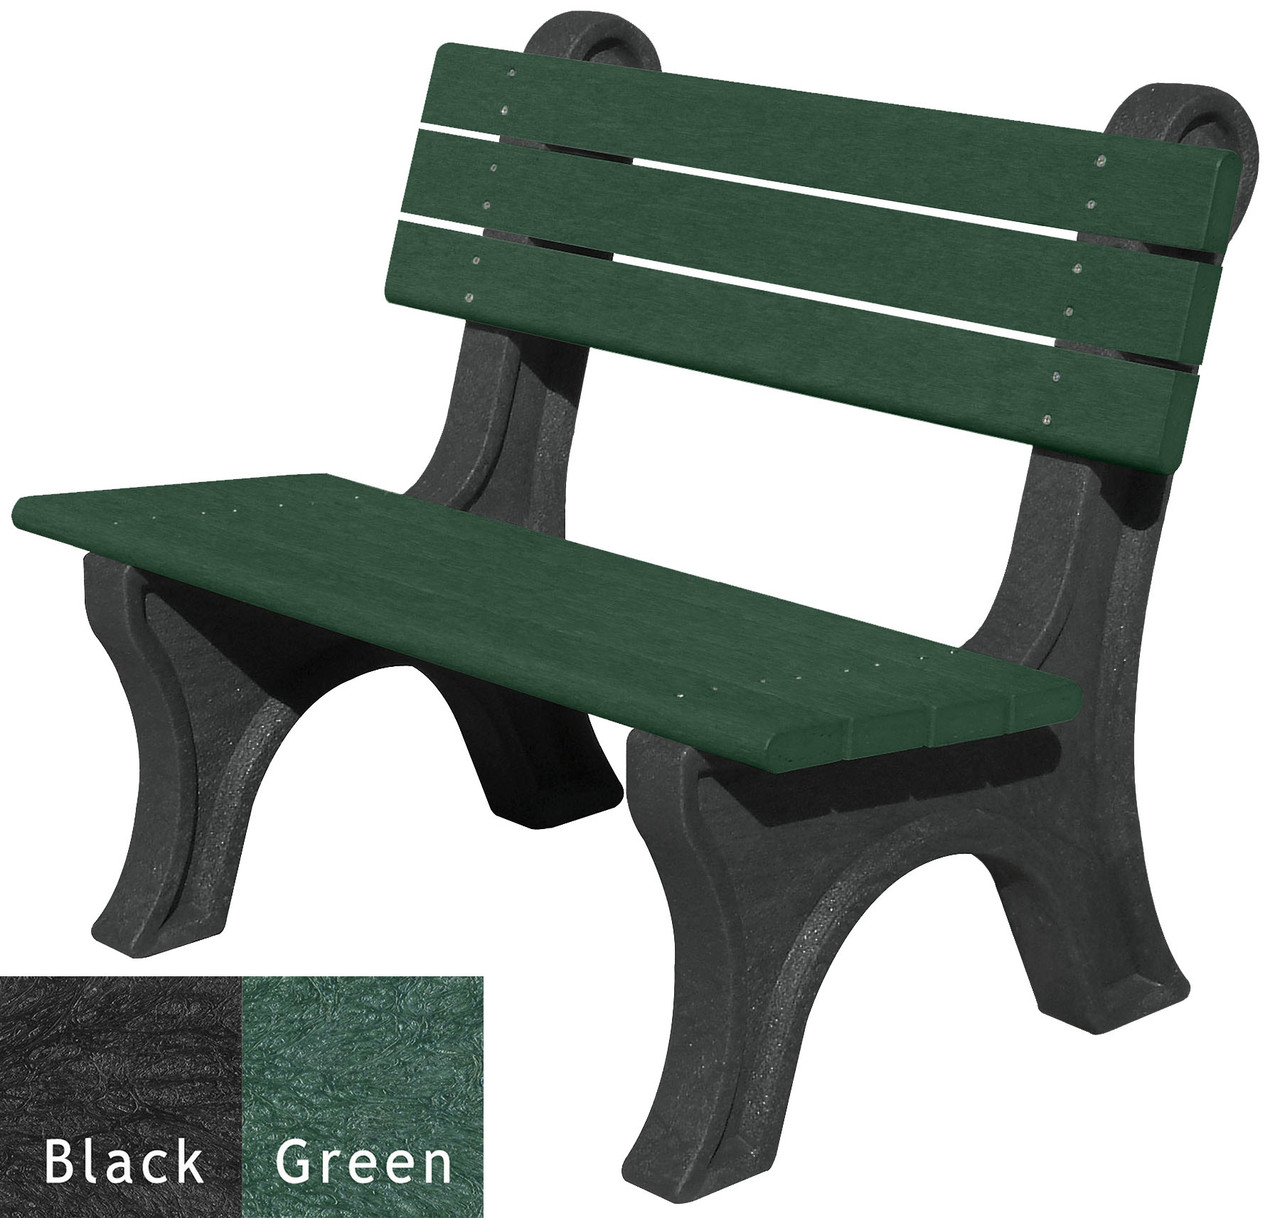 Black and Green